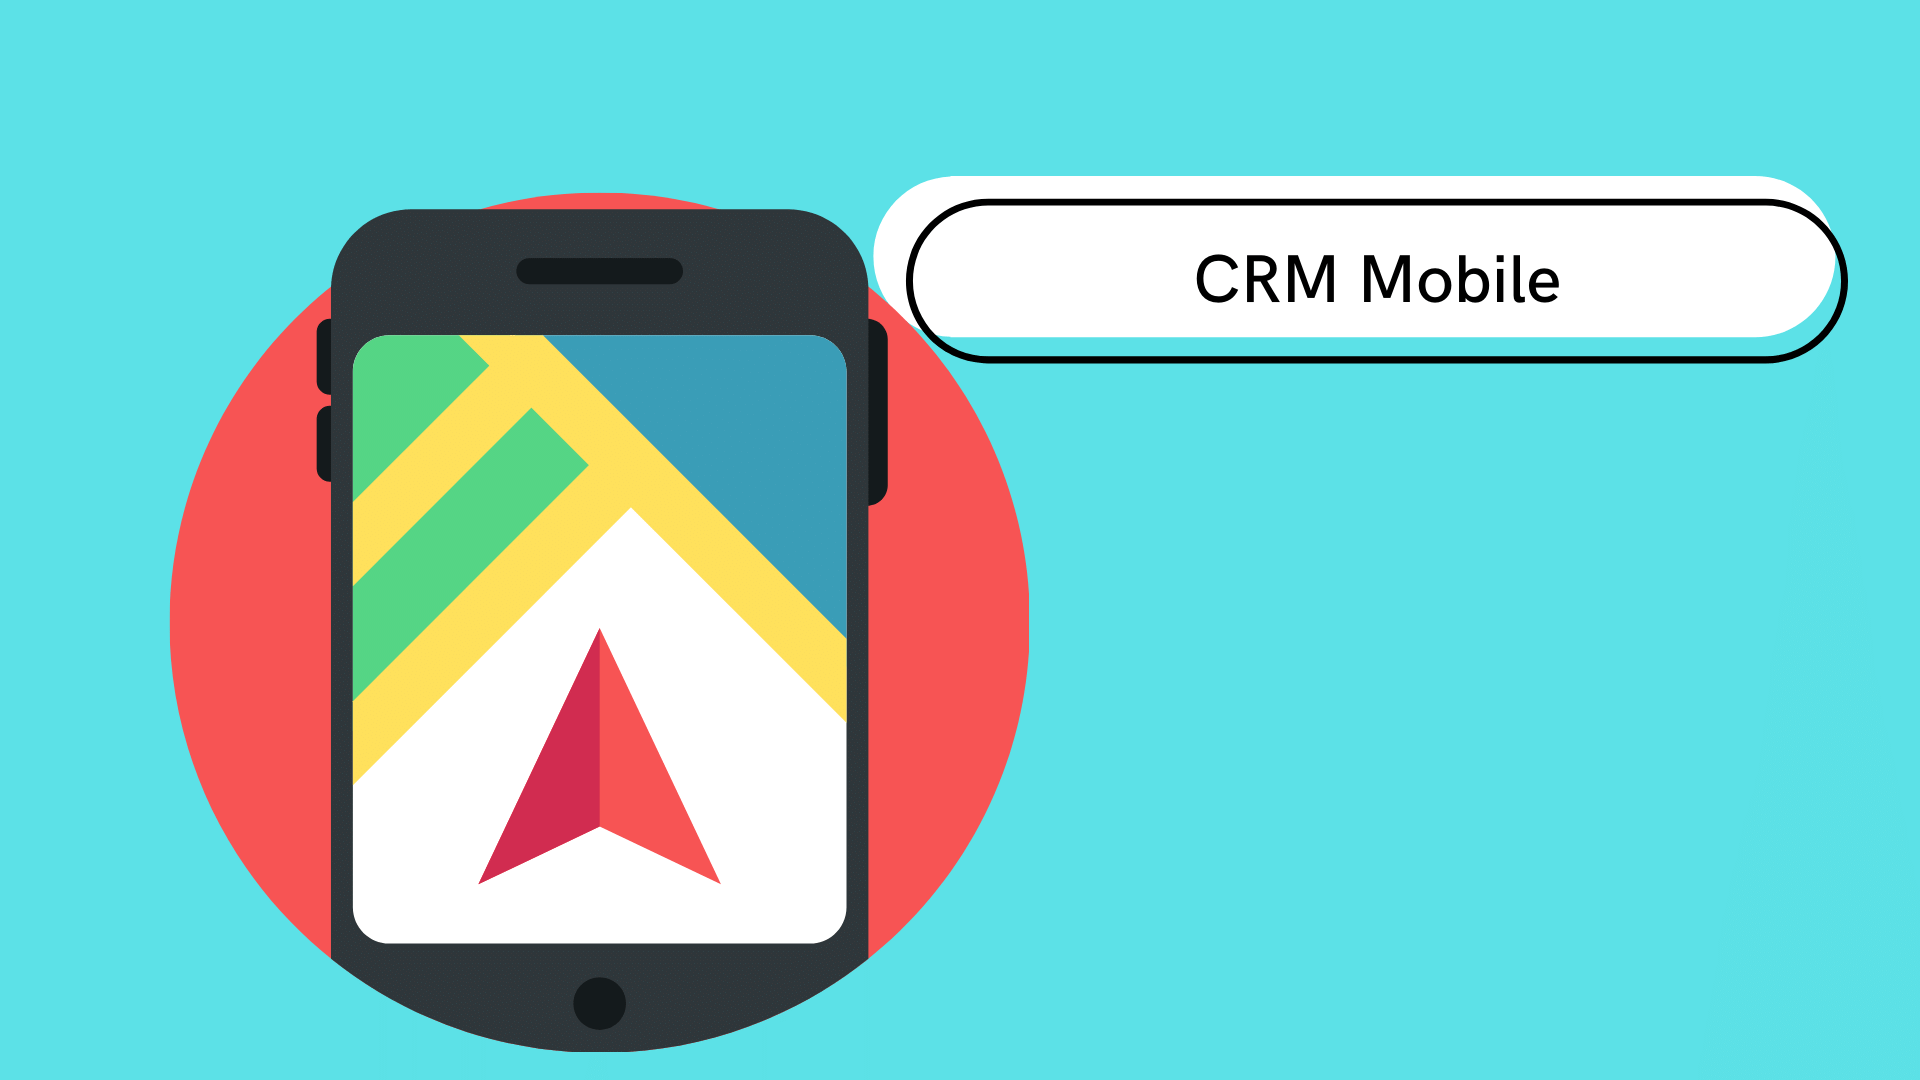 CRM mobile